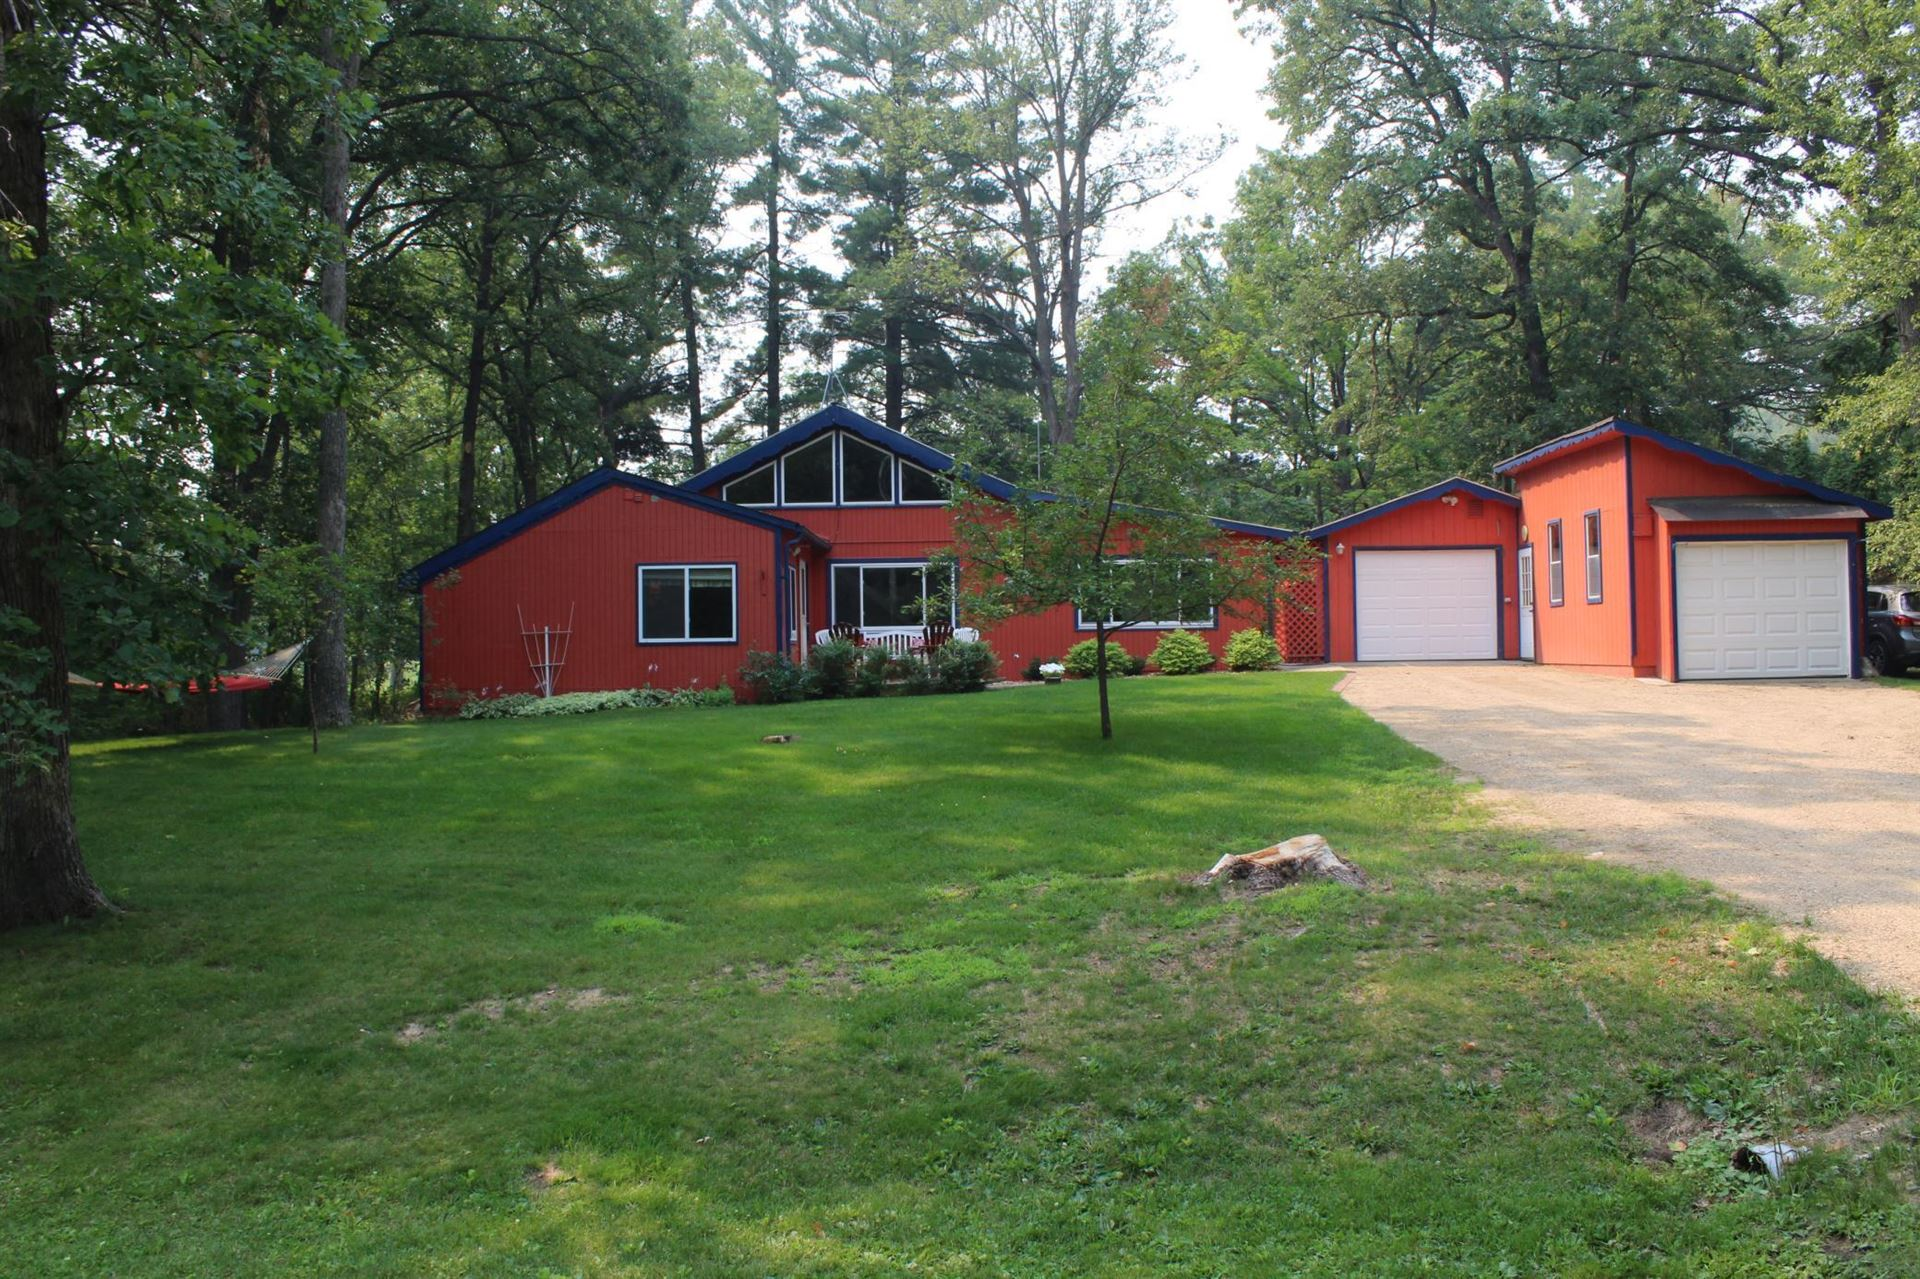 Photo of 40478 Pequot Drive, Browerville, MN 56438 (MLS # 6073429)